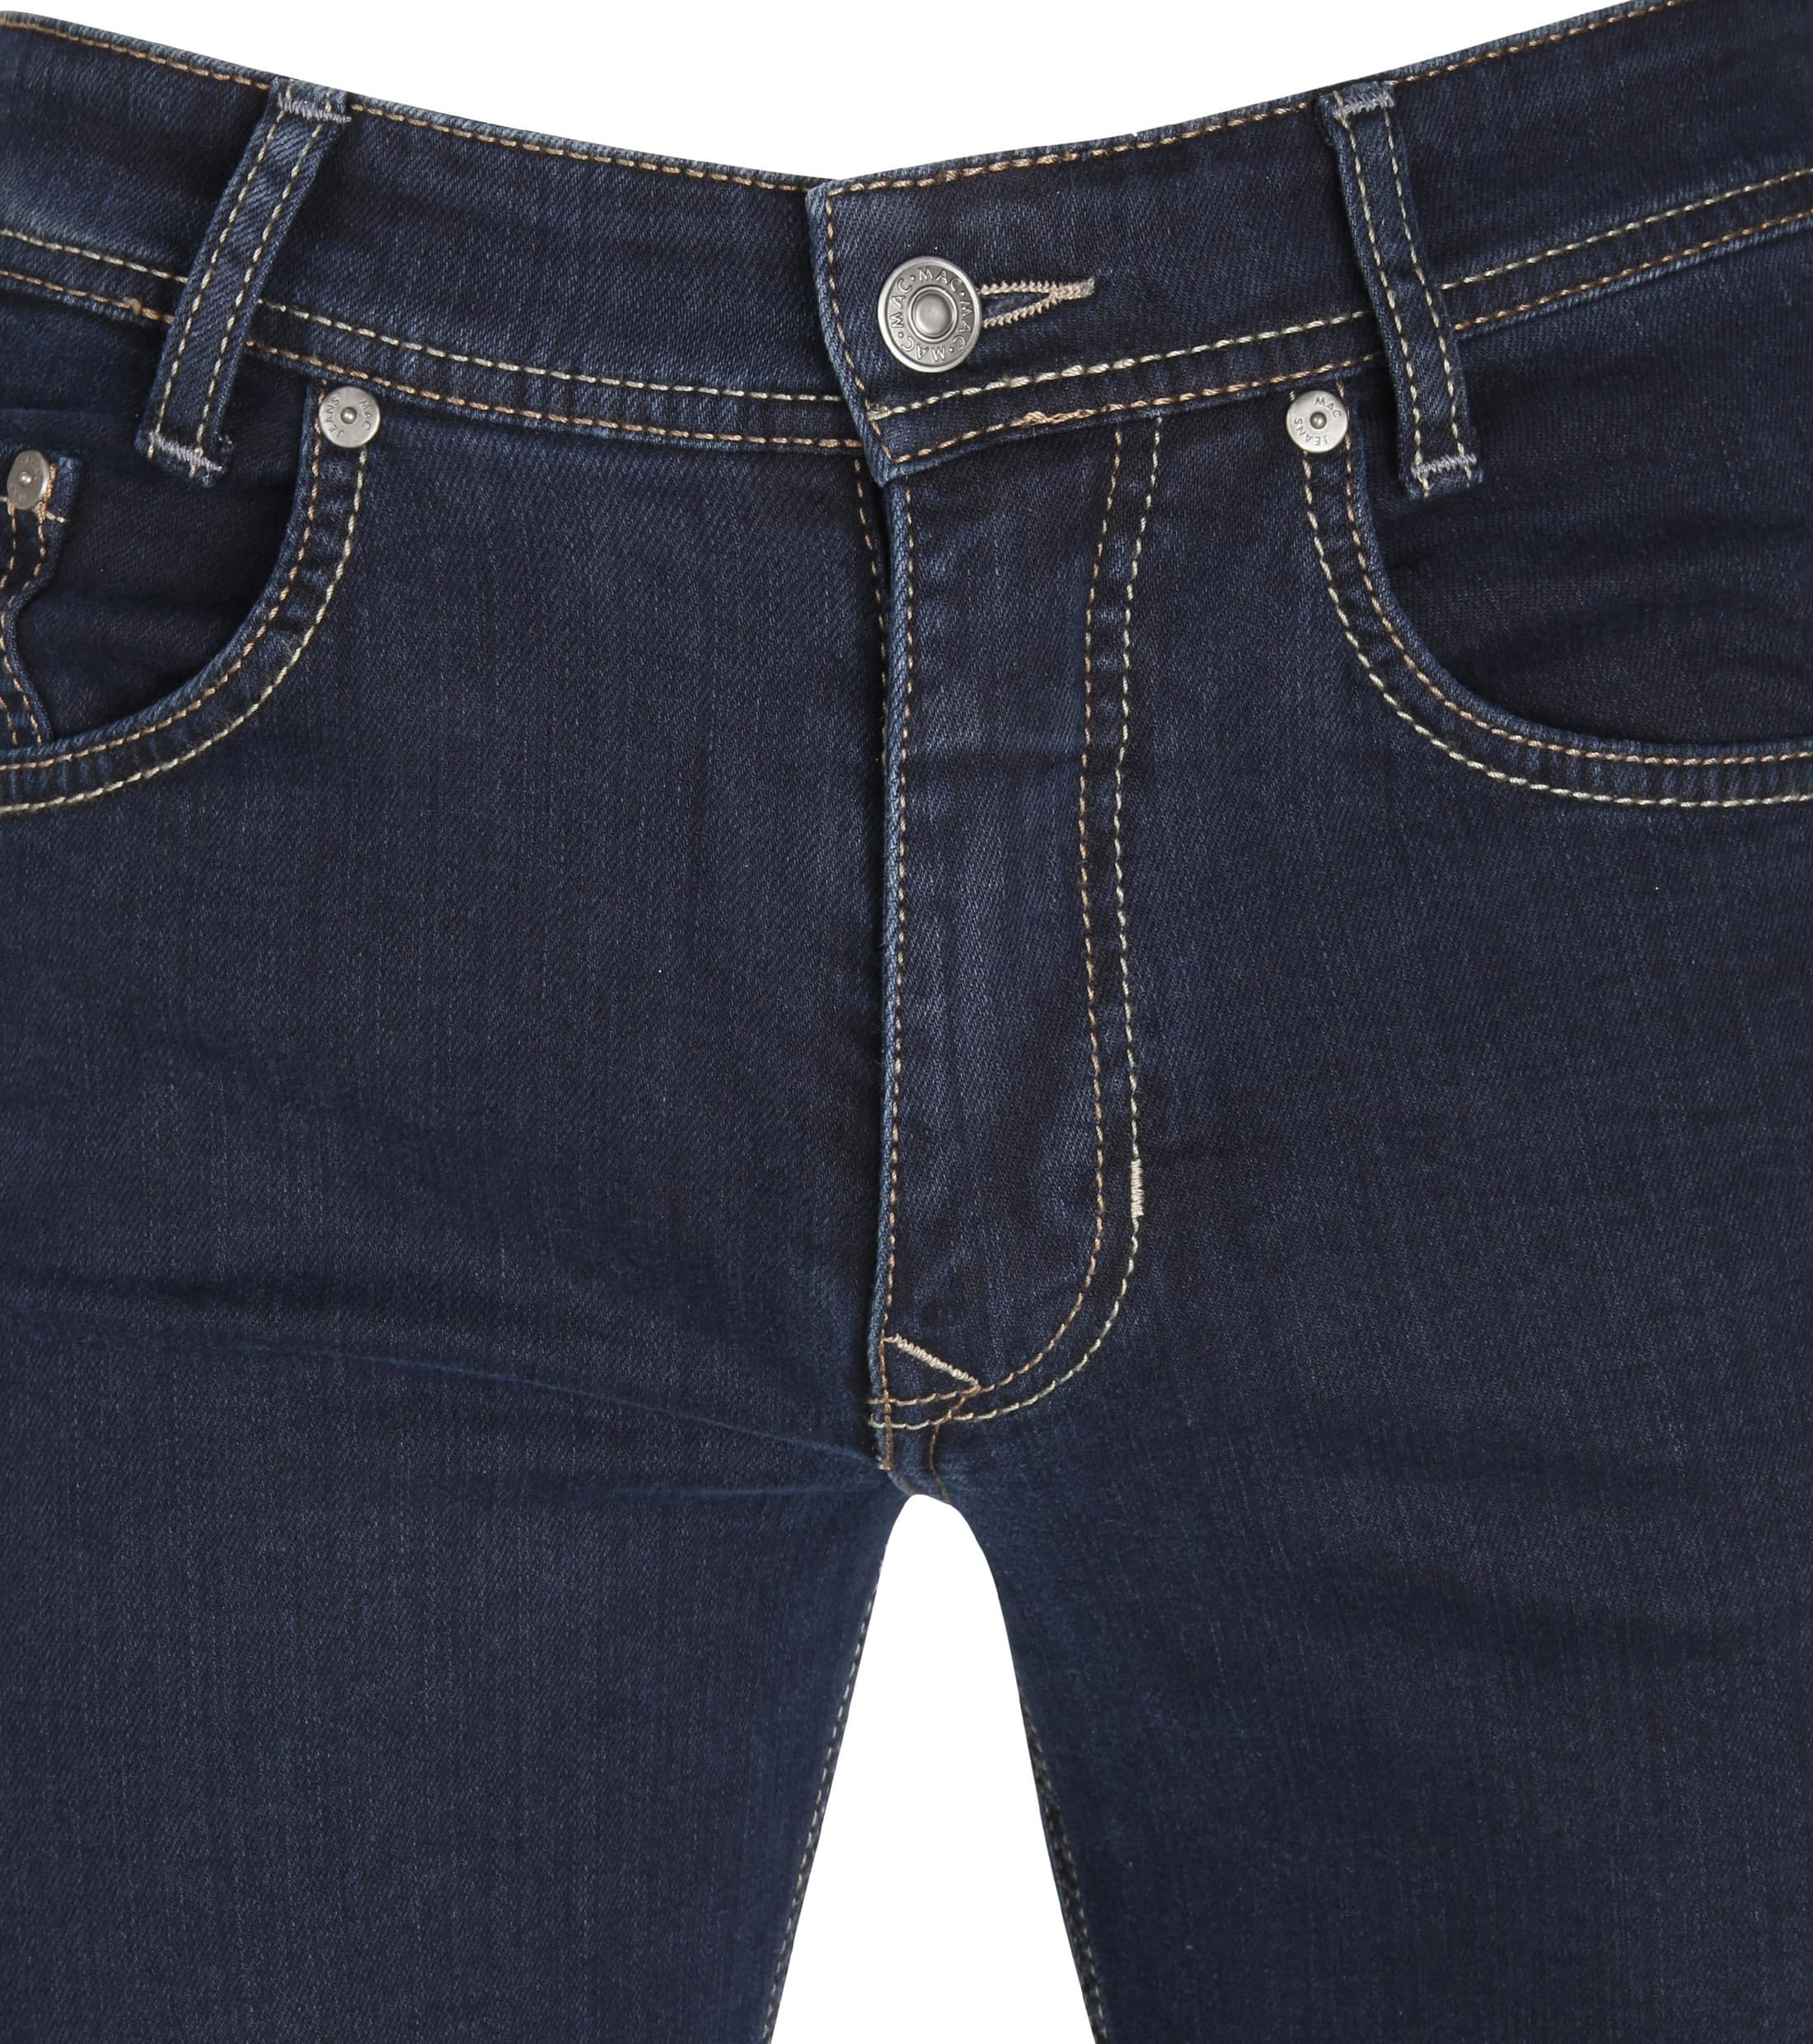 Mac Jeans Arne Stretch Blue Black H799 foto 2